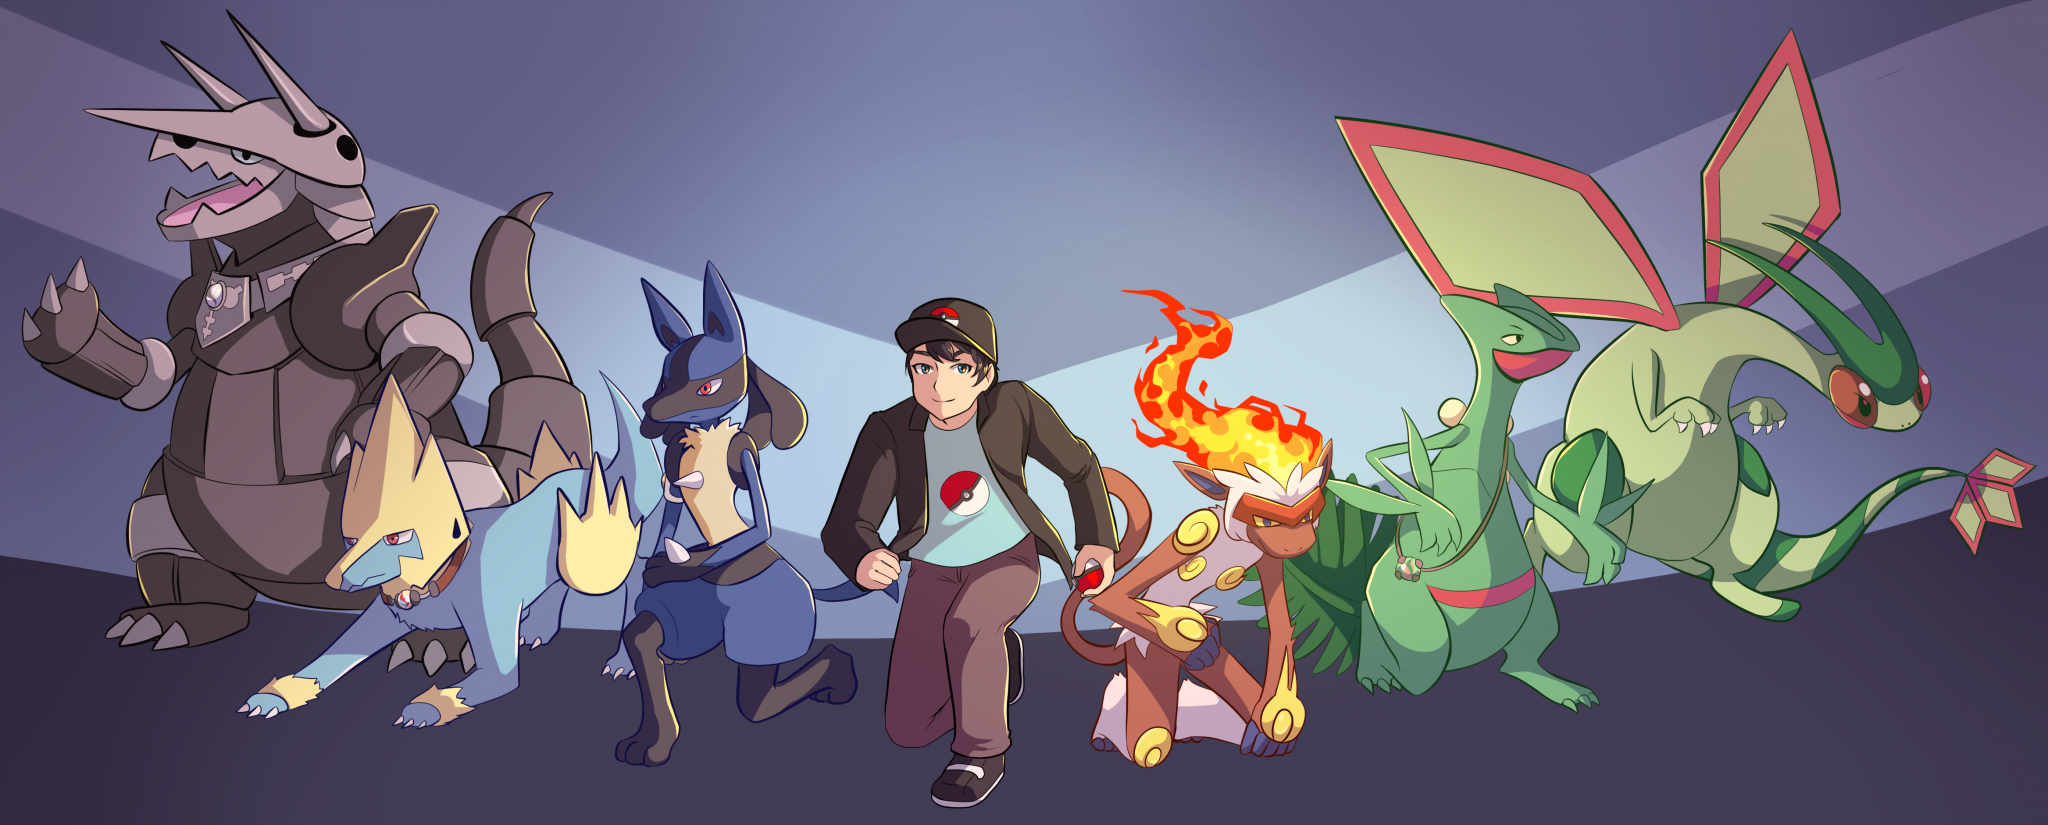 Hoenn-Team-Artwork by Dreamdust